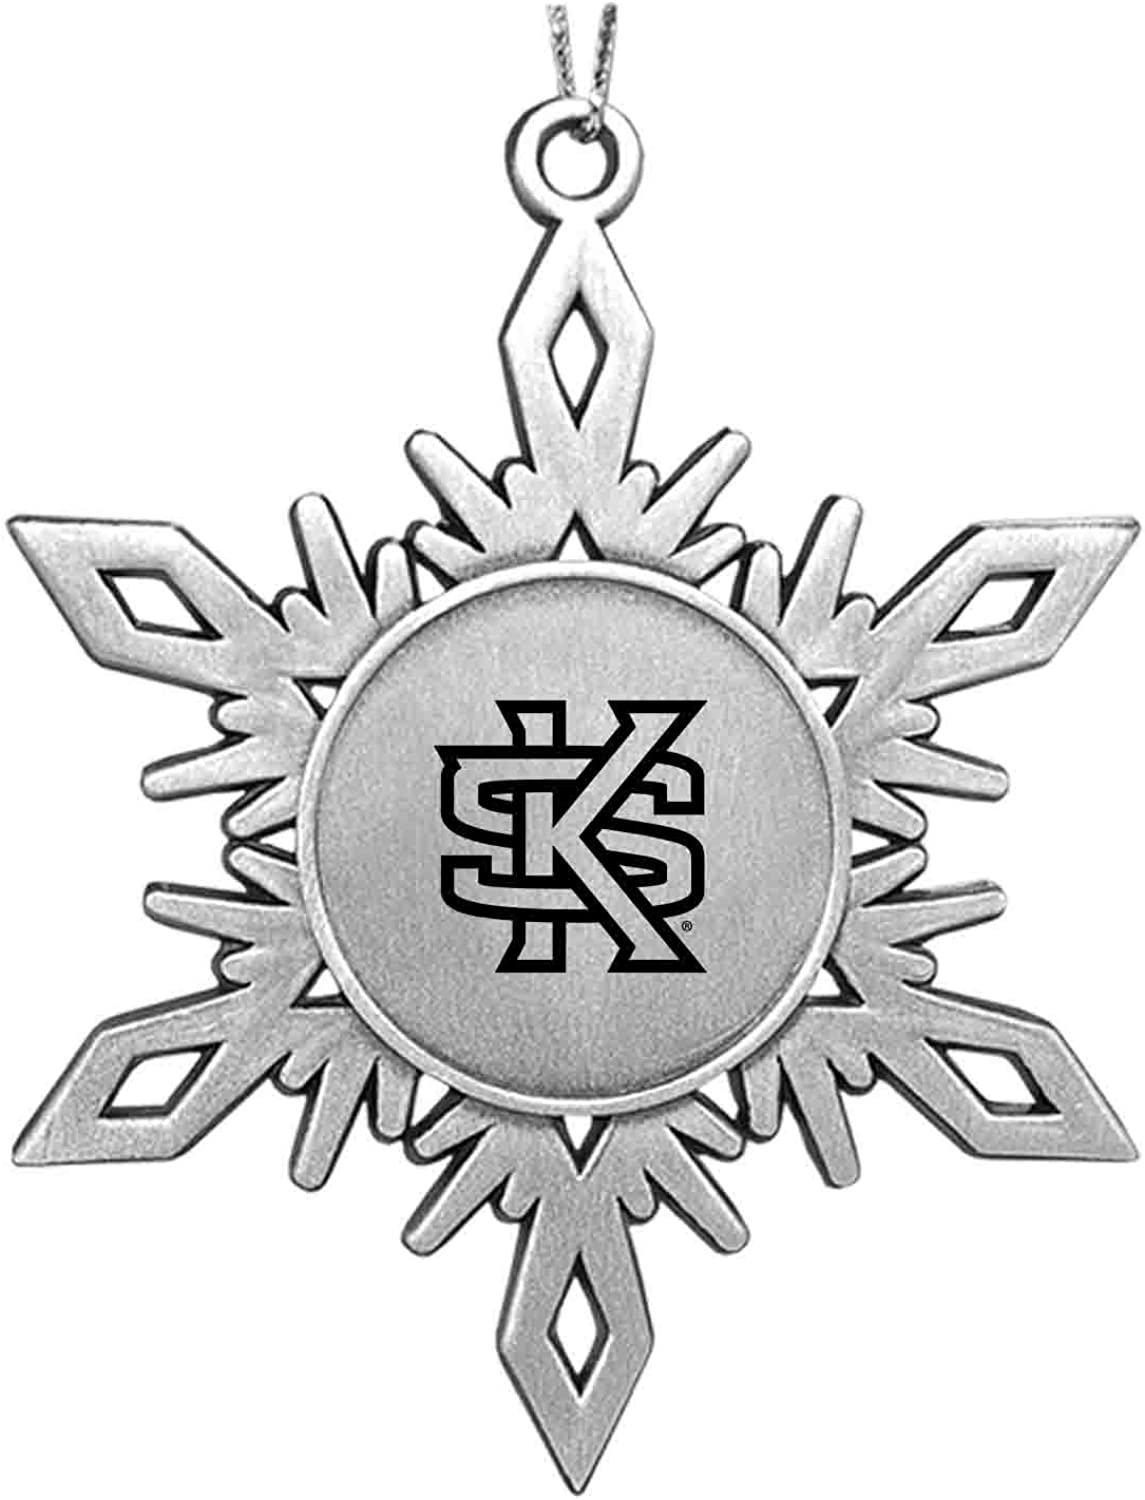 LXG, Inc. Kennesaw State University|Snowflake Ornament|Pewter